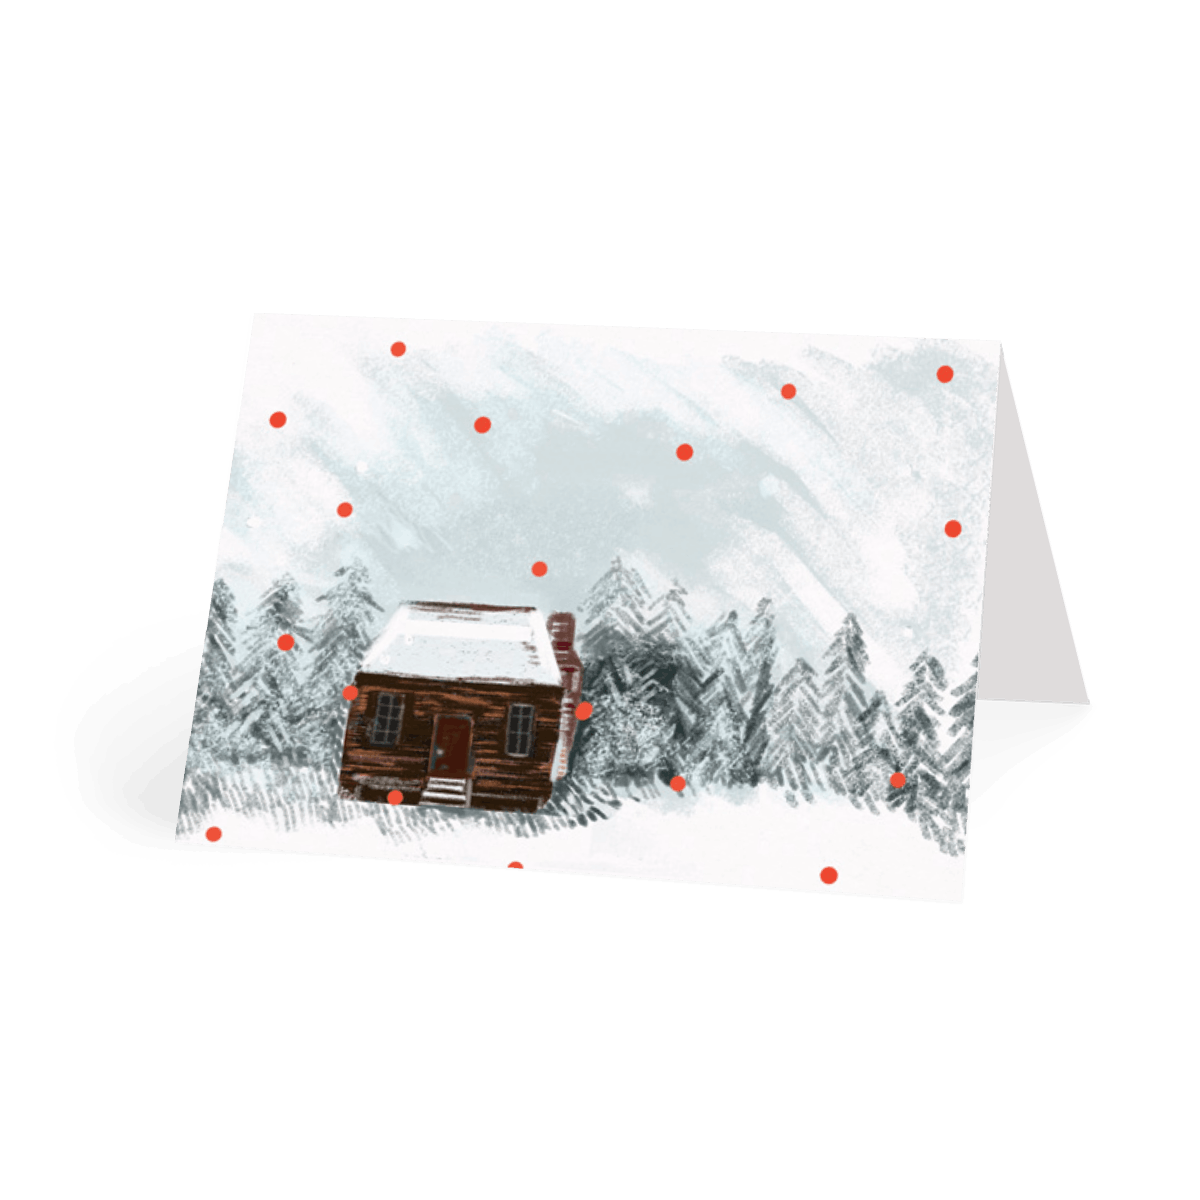 Https%3a%2f%2fwww.papier.com%2fproduct image%2f29683%2f14%2fhappy holidays winter cabin 7483 avant 1508422751.png?ixlib=rb 1.1